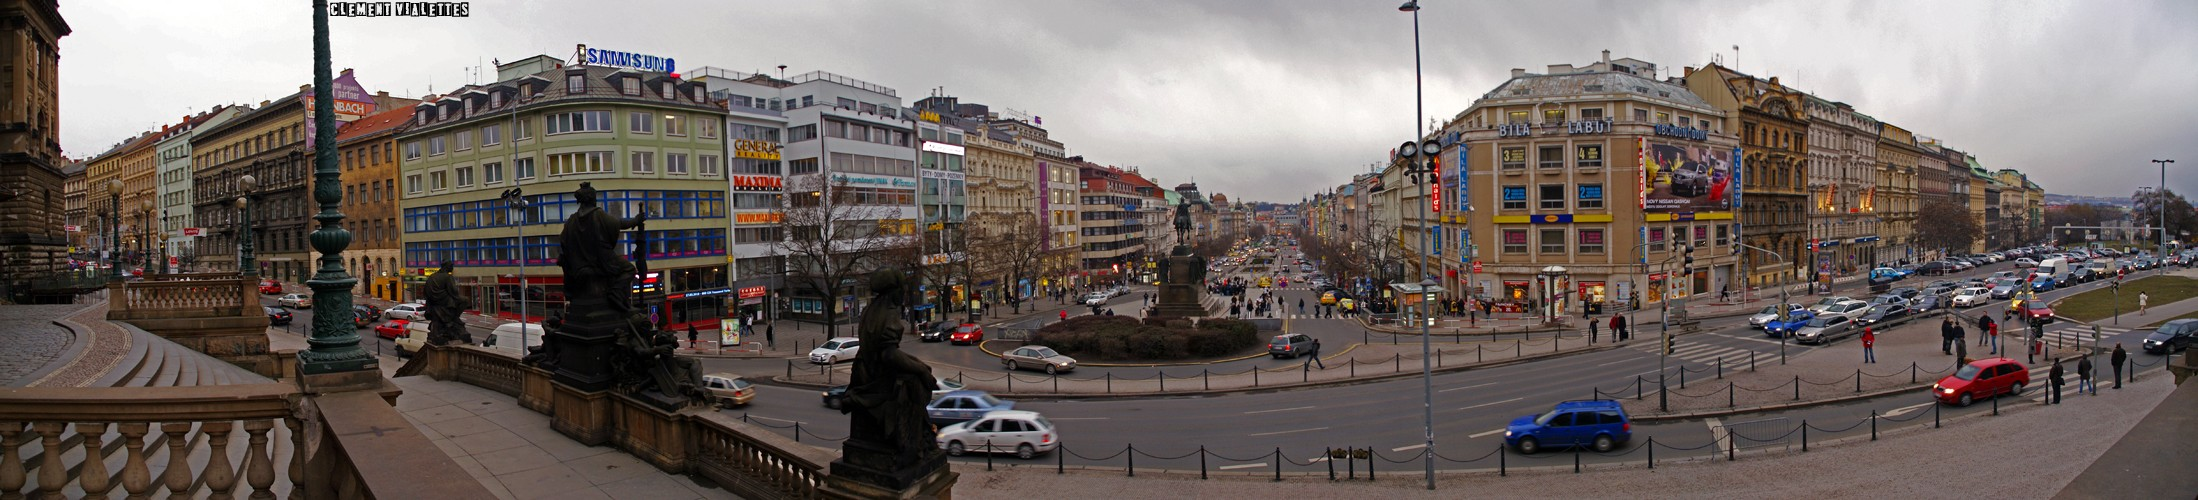 2010-03-prague-la-place-wenceslas-01.jpg